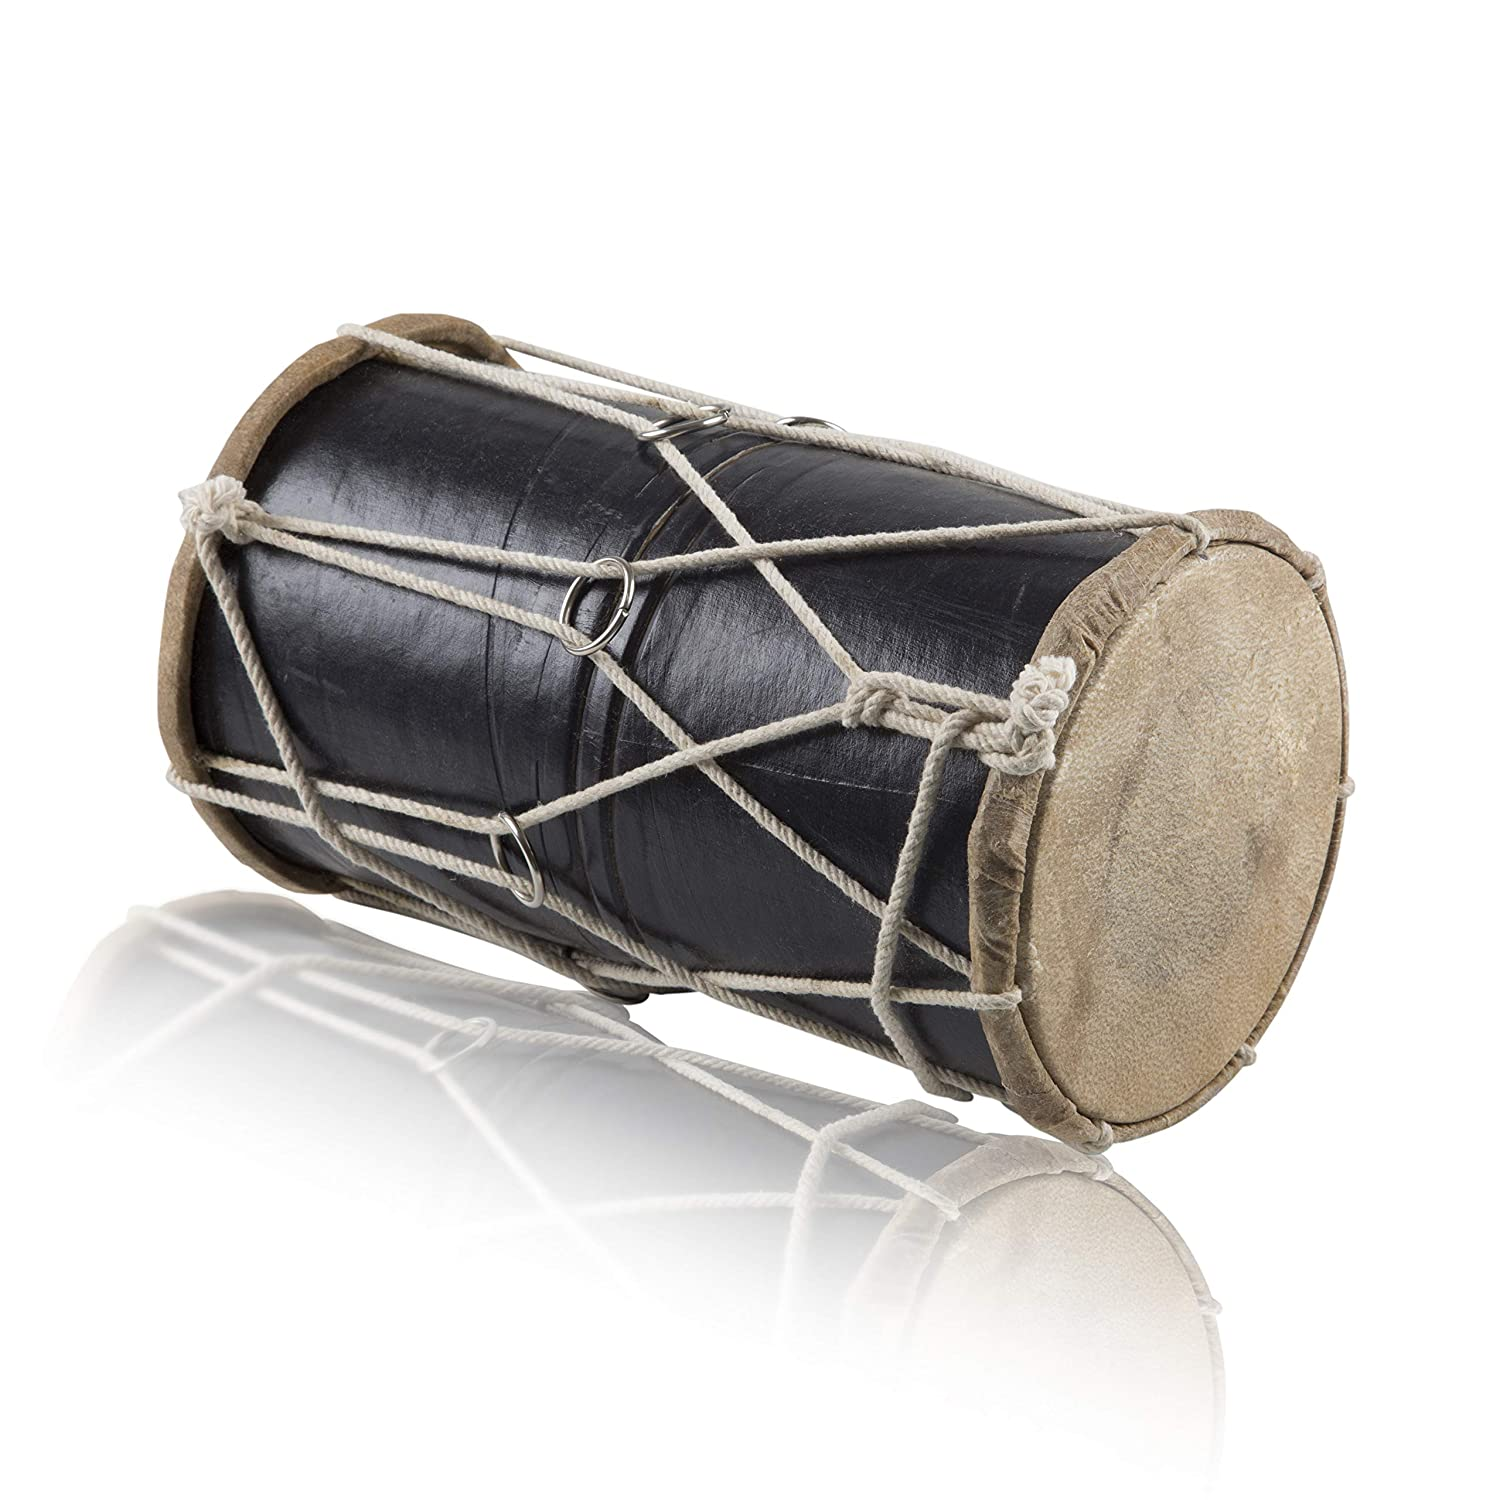 Handmade Wooden /& Leather Classical Indian Folk Tabla Drum Set Hand Percussion Drums World Musical Instruments Punjabi Dhol Dholak Dholki Fun For Adults Kids Birthday Housewarming Gift Ideas